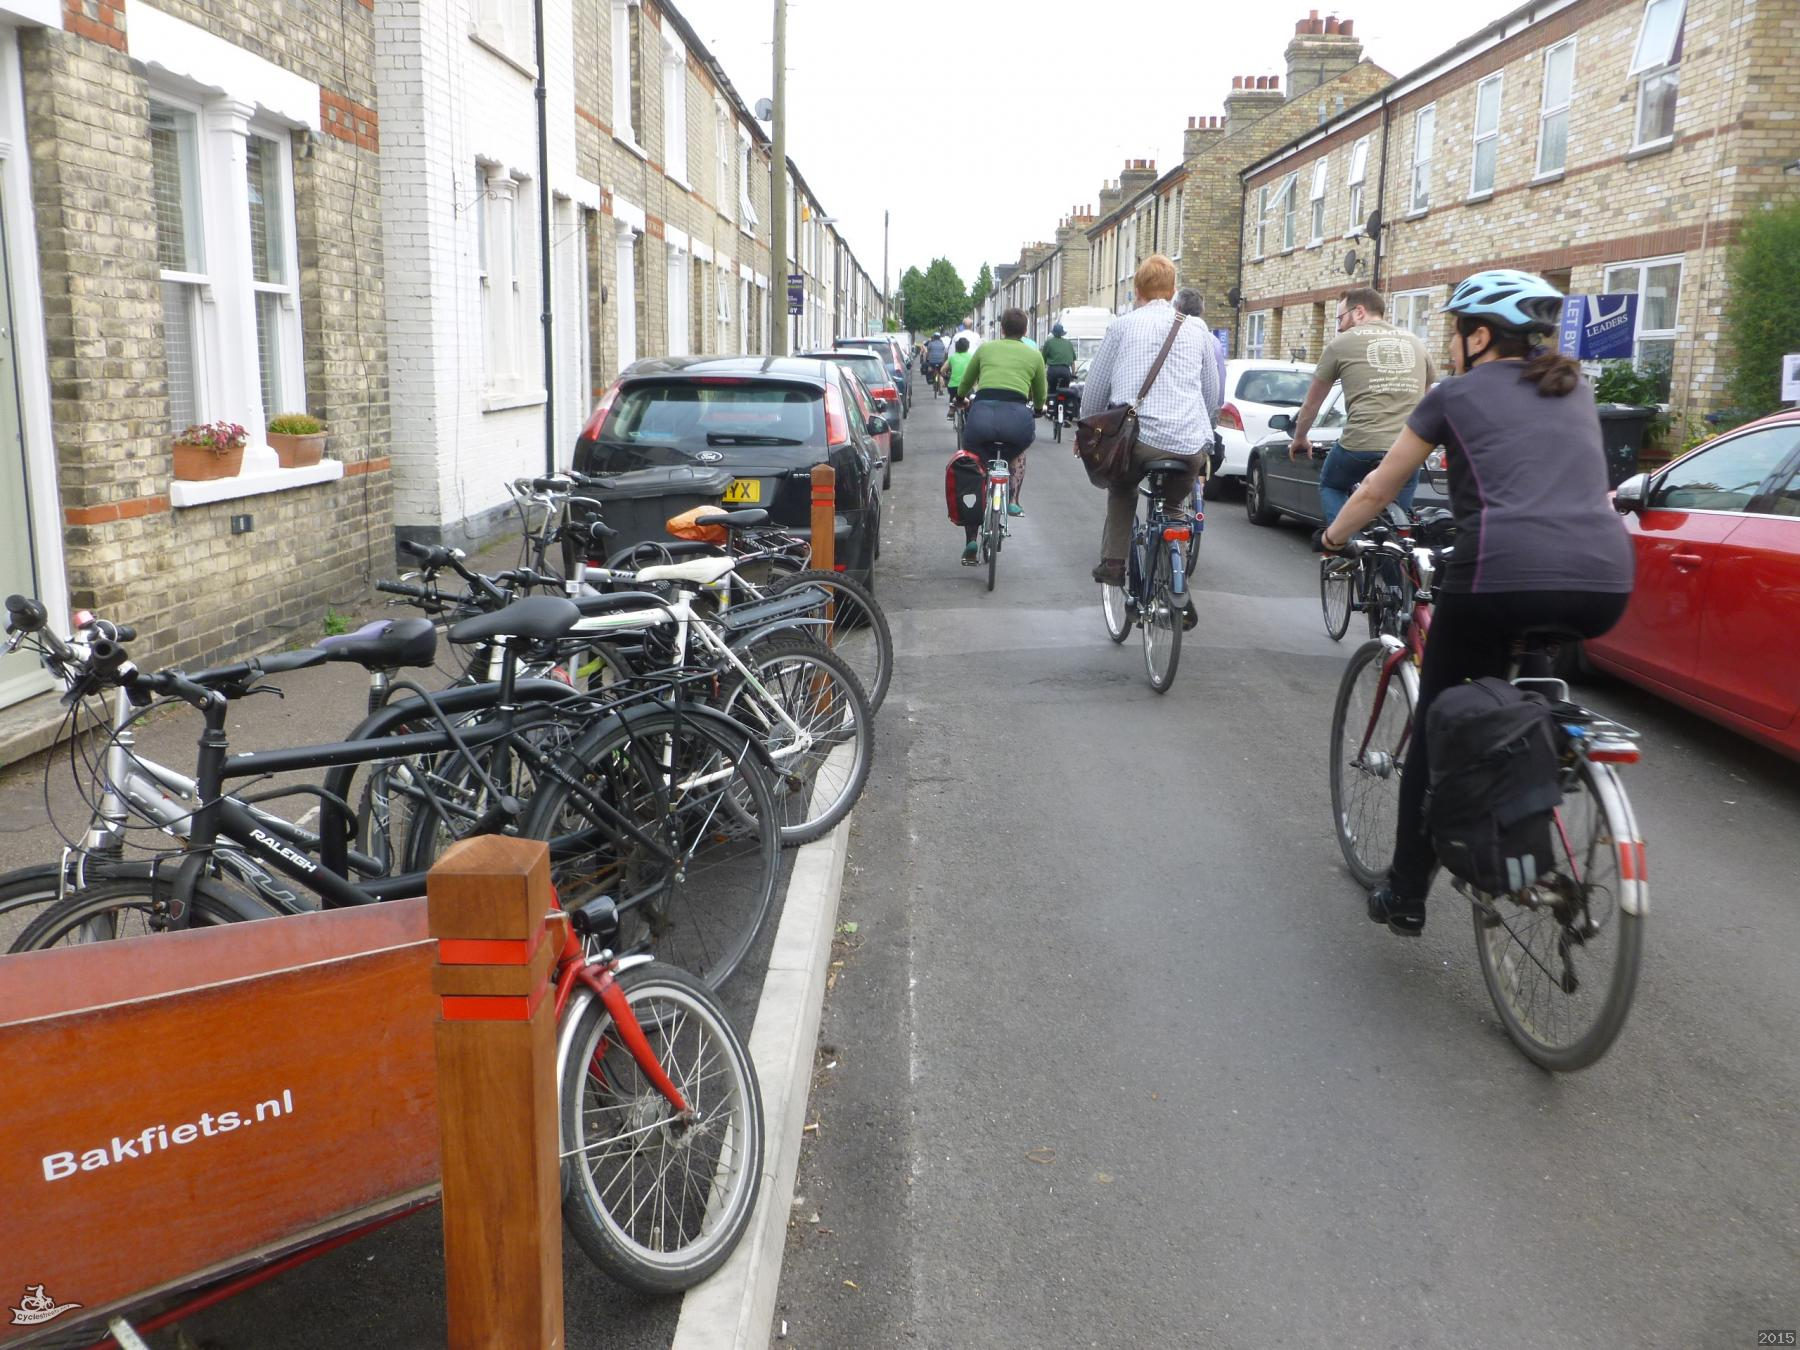 Street Cycle Parking on Thoday Street